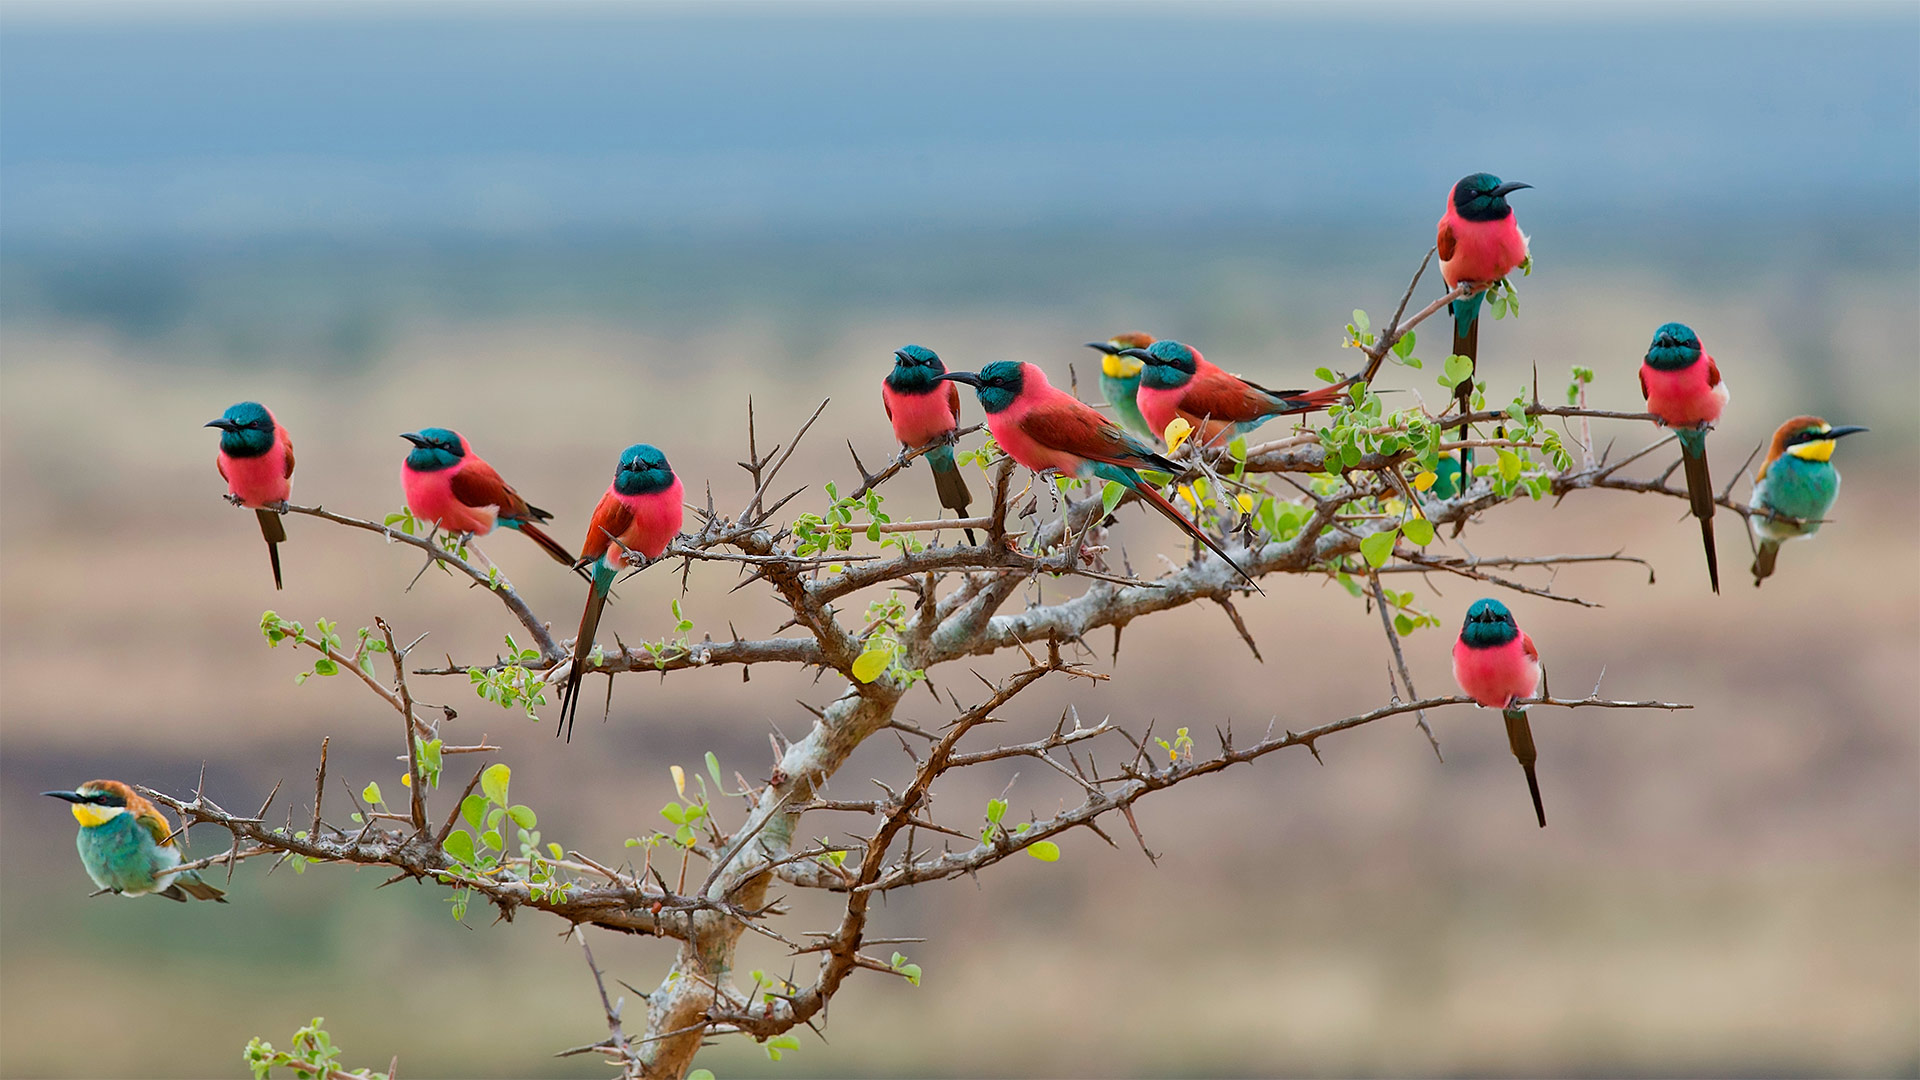 Northern carmine and European bee-eaters in Mkomazi National Park, Tanzania (? webguzs/Getty Images)